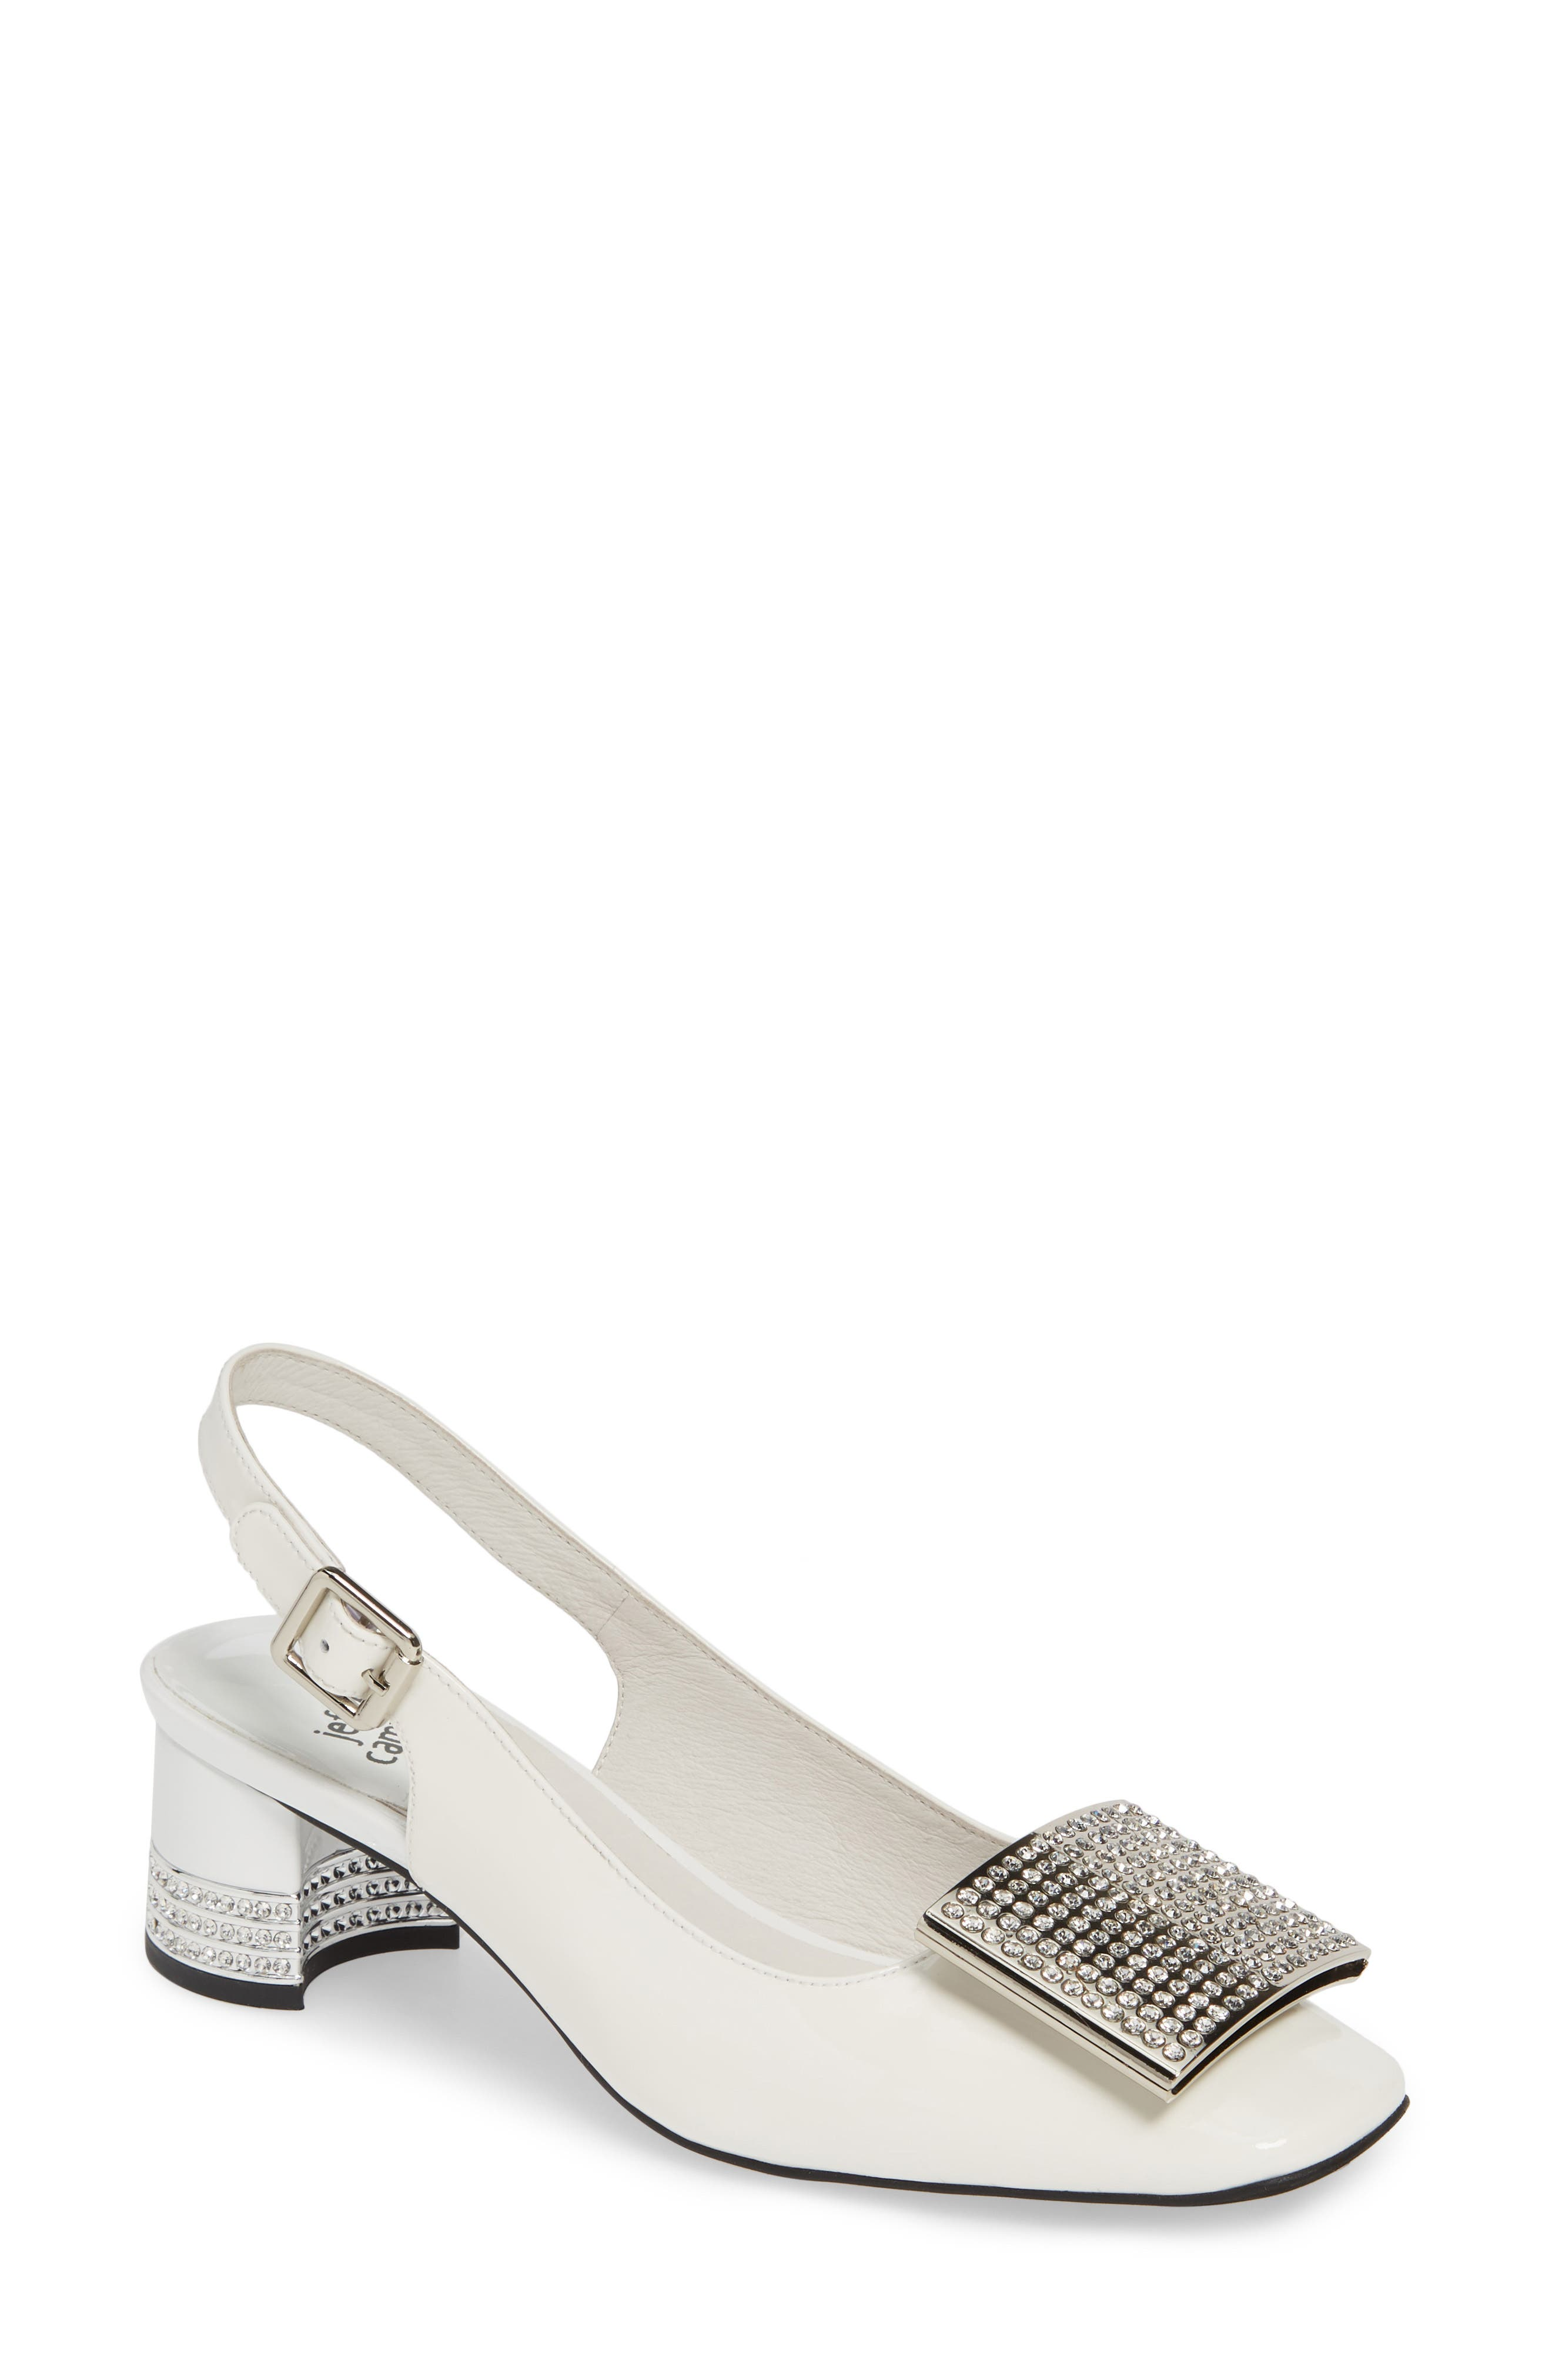 JEFFREY CAMPBELL Billion Jewel Slingback Pump, Main, color, WHITE PATENT LEATHER/ SILVER